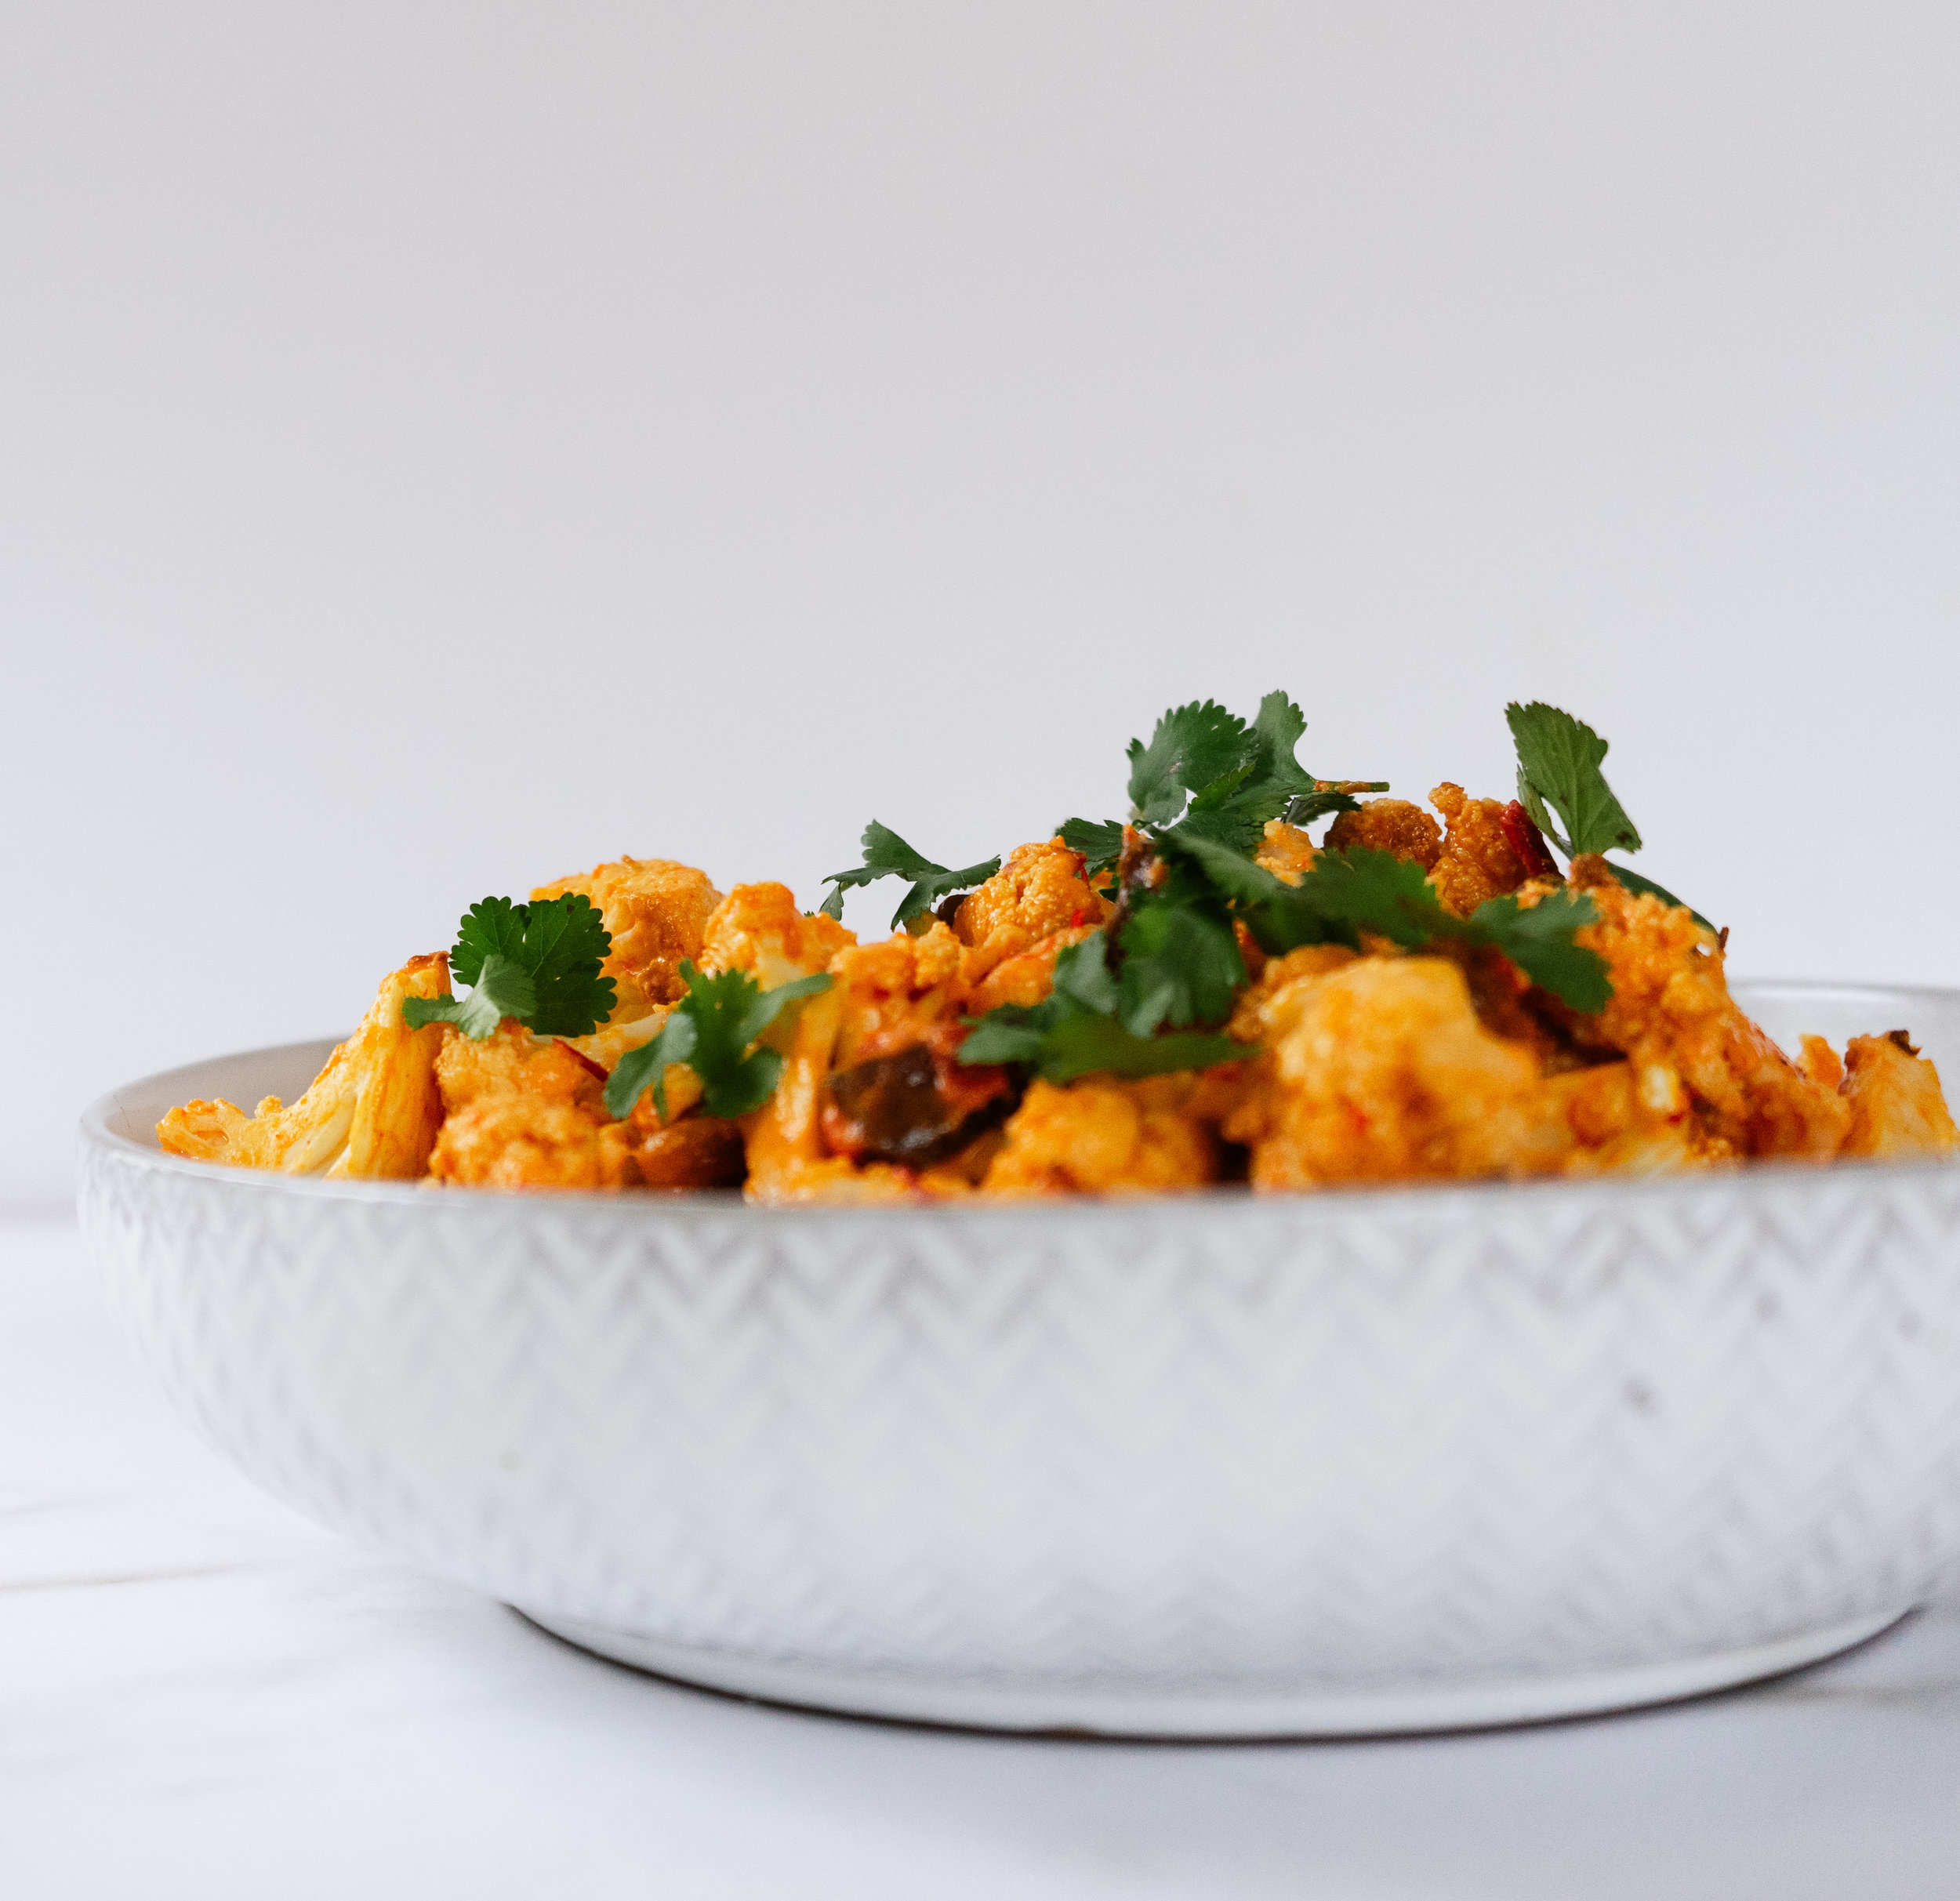 Tahini and harissa roasted cauliflower is a delicious and satisfying whole30 and paleo friendly side dish. It is the perfect addition to any cut of meat or veggie bowl.